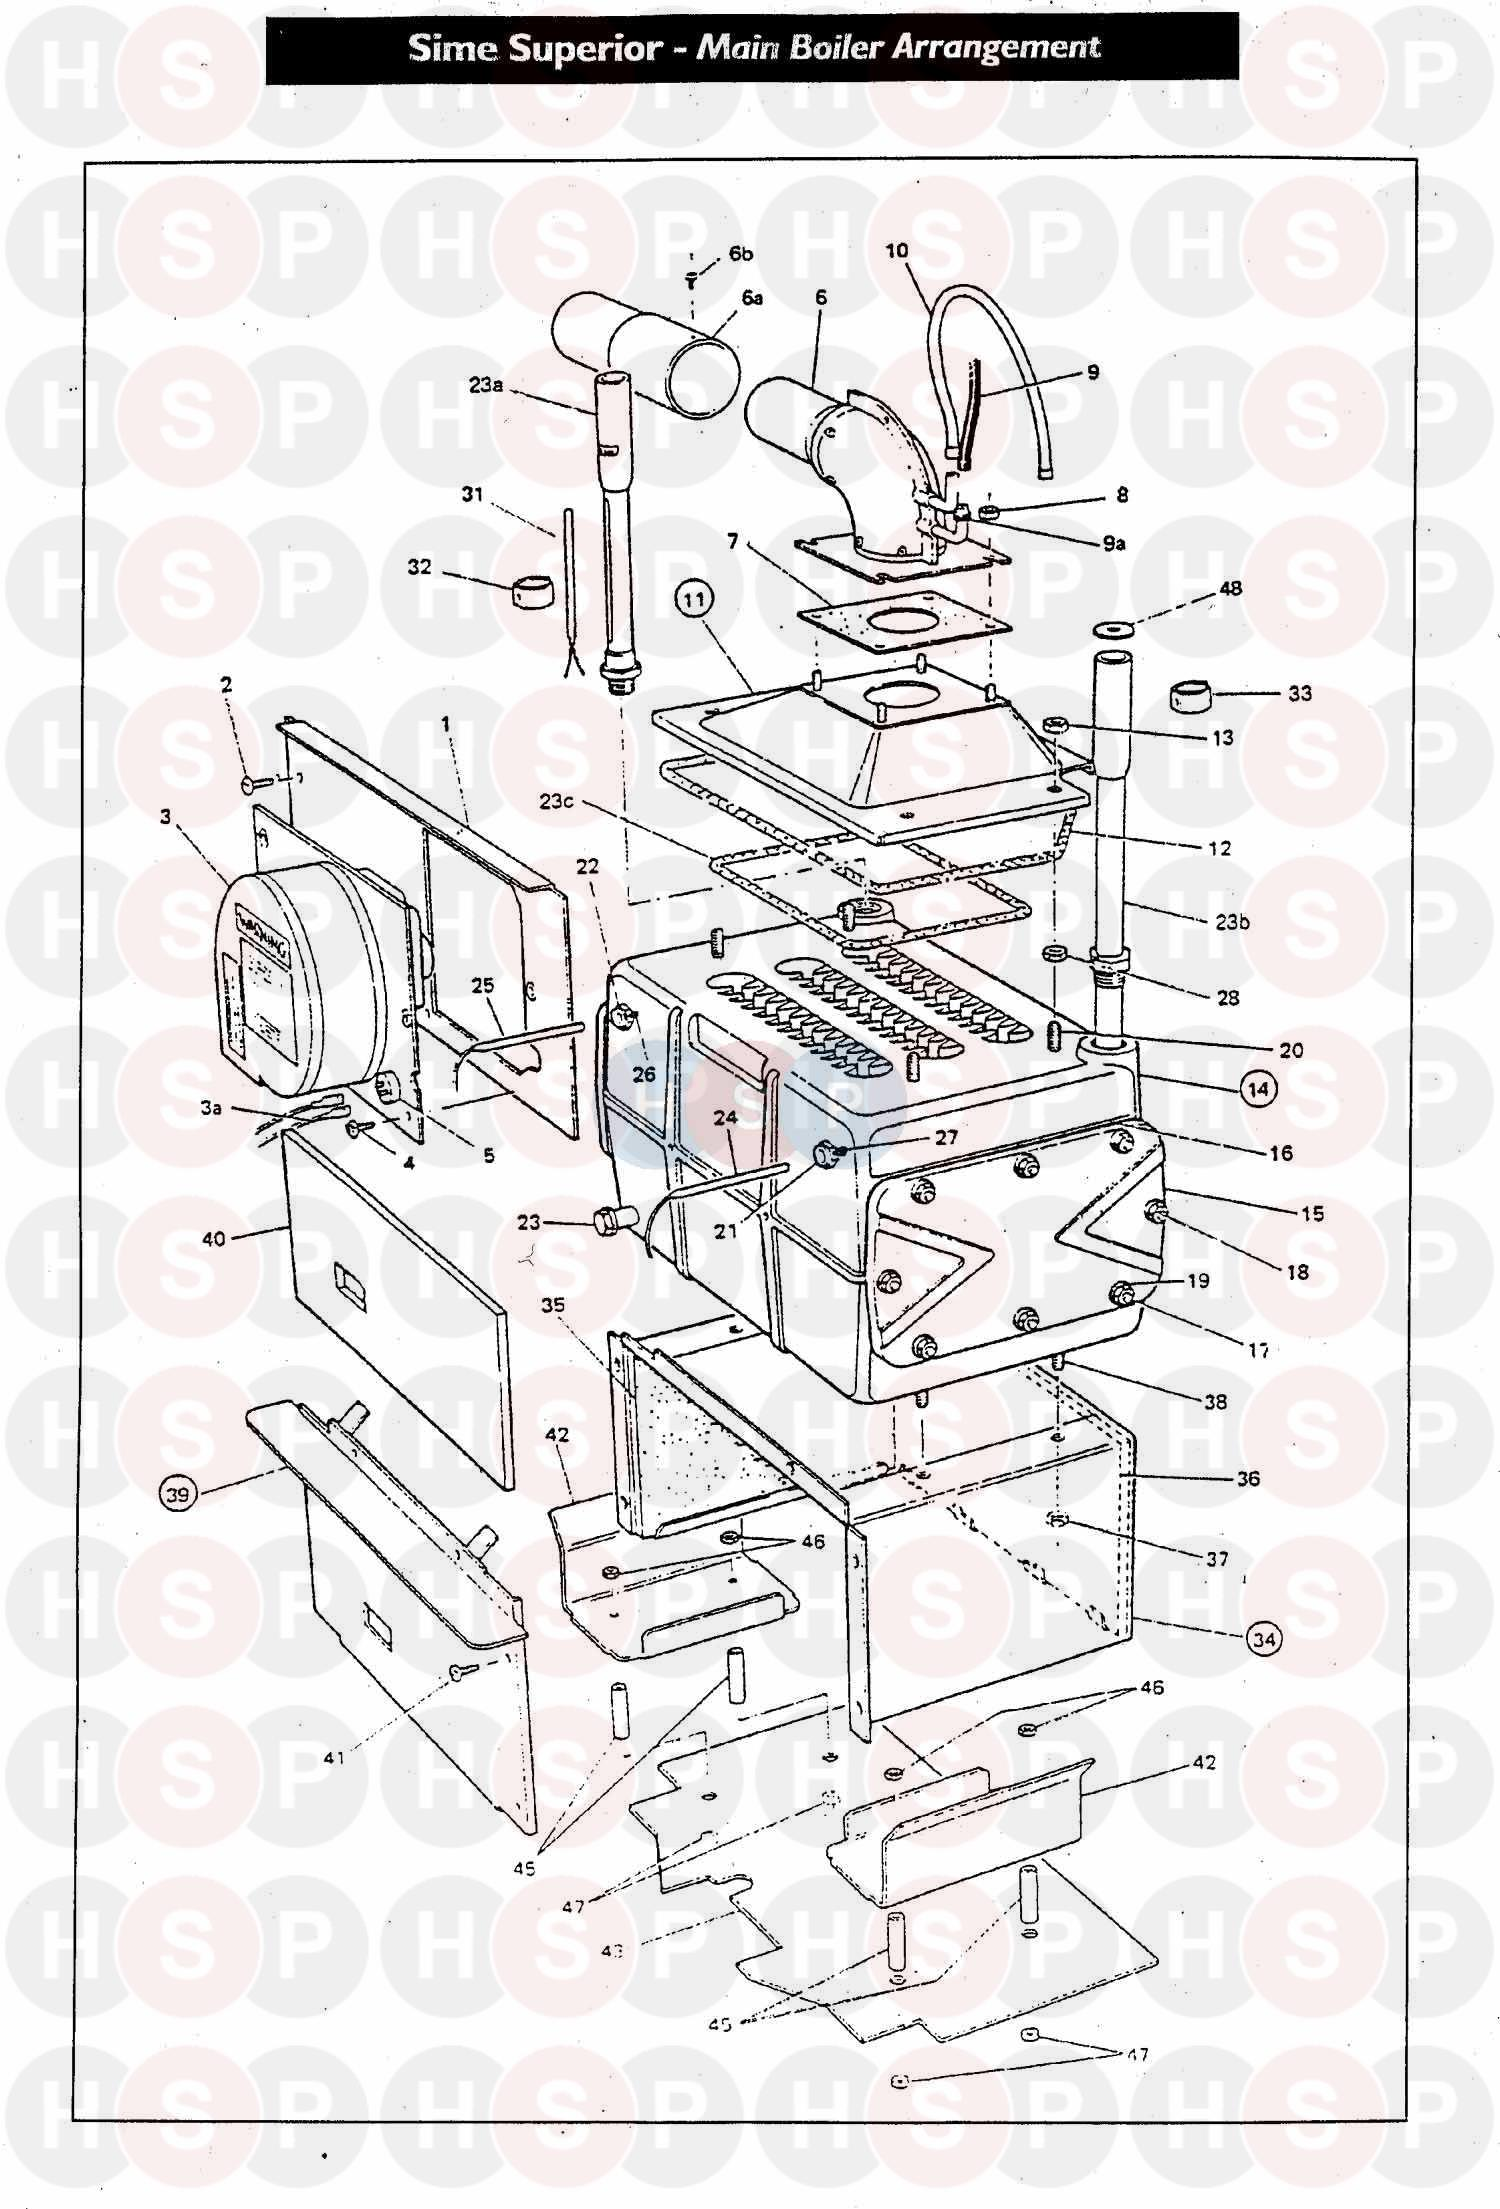 Peachy Sime Superior Mki 60 Assembly 1 Diagram Heating Spare Parts Wiring 101 Kniepimsautoservicenl